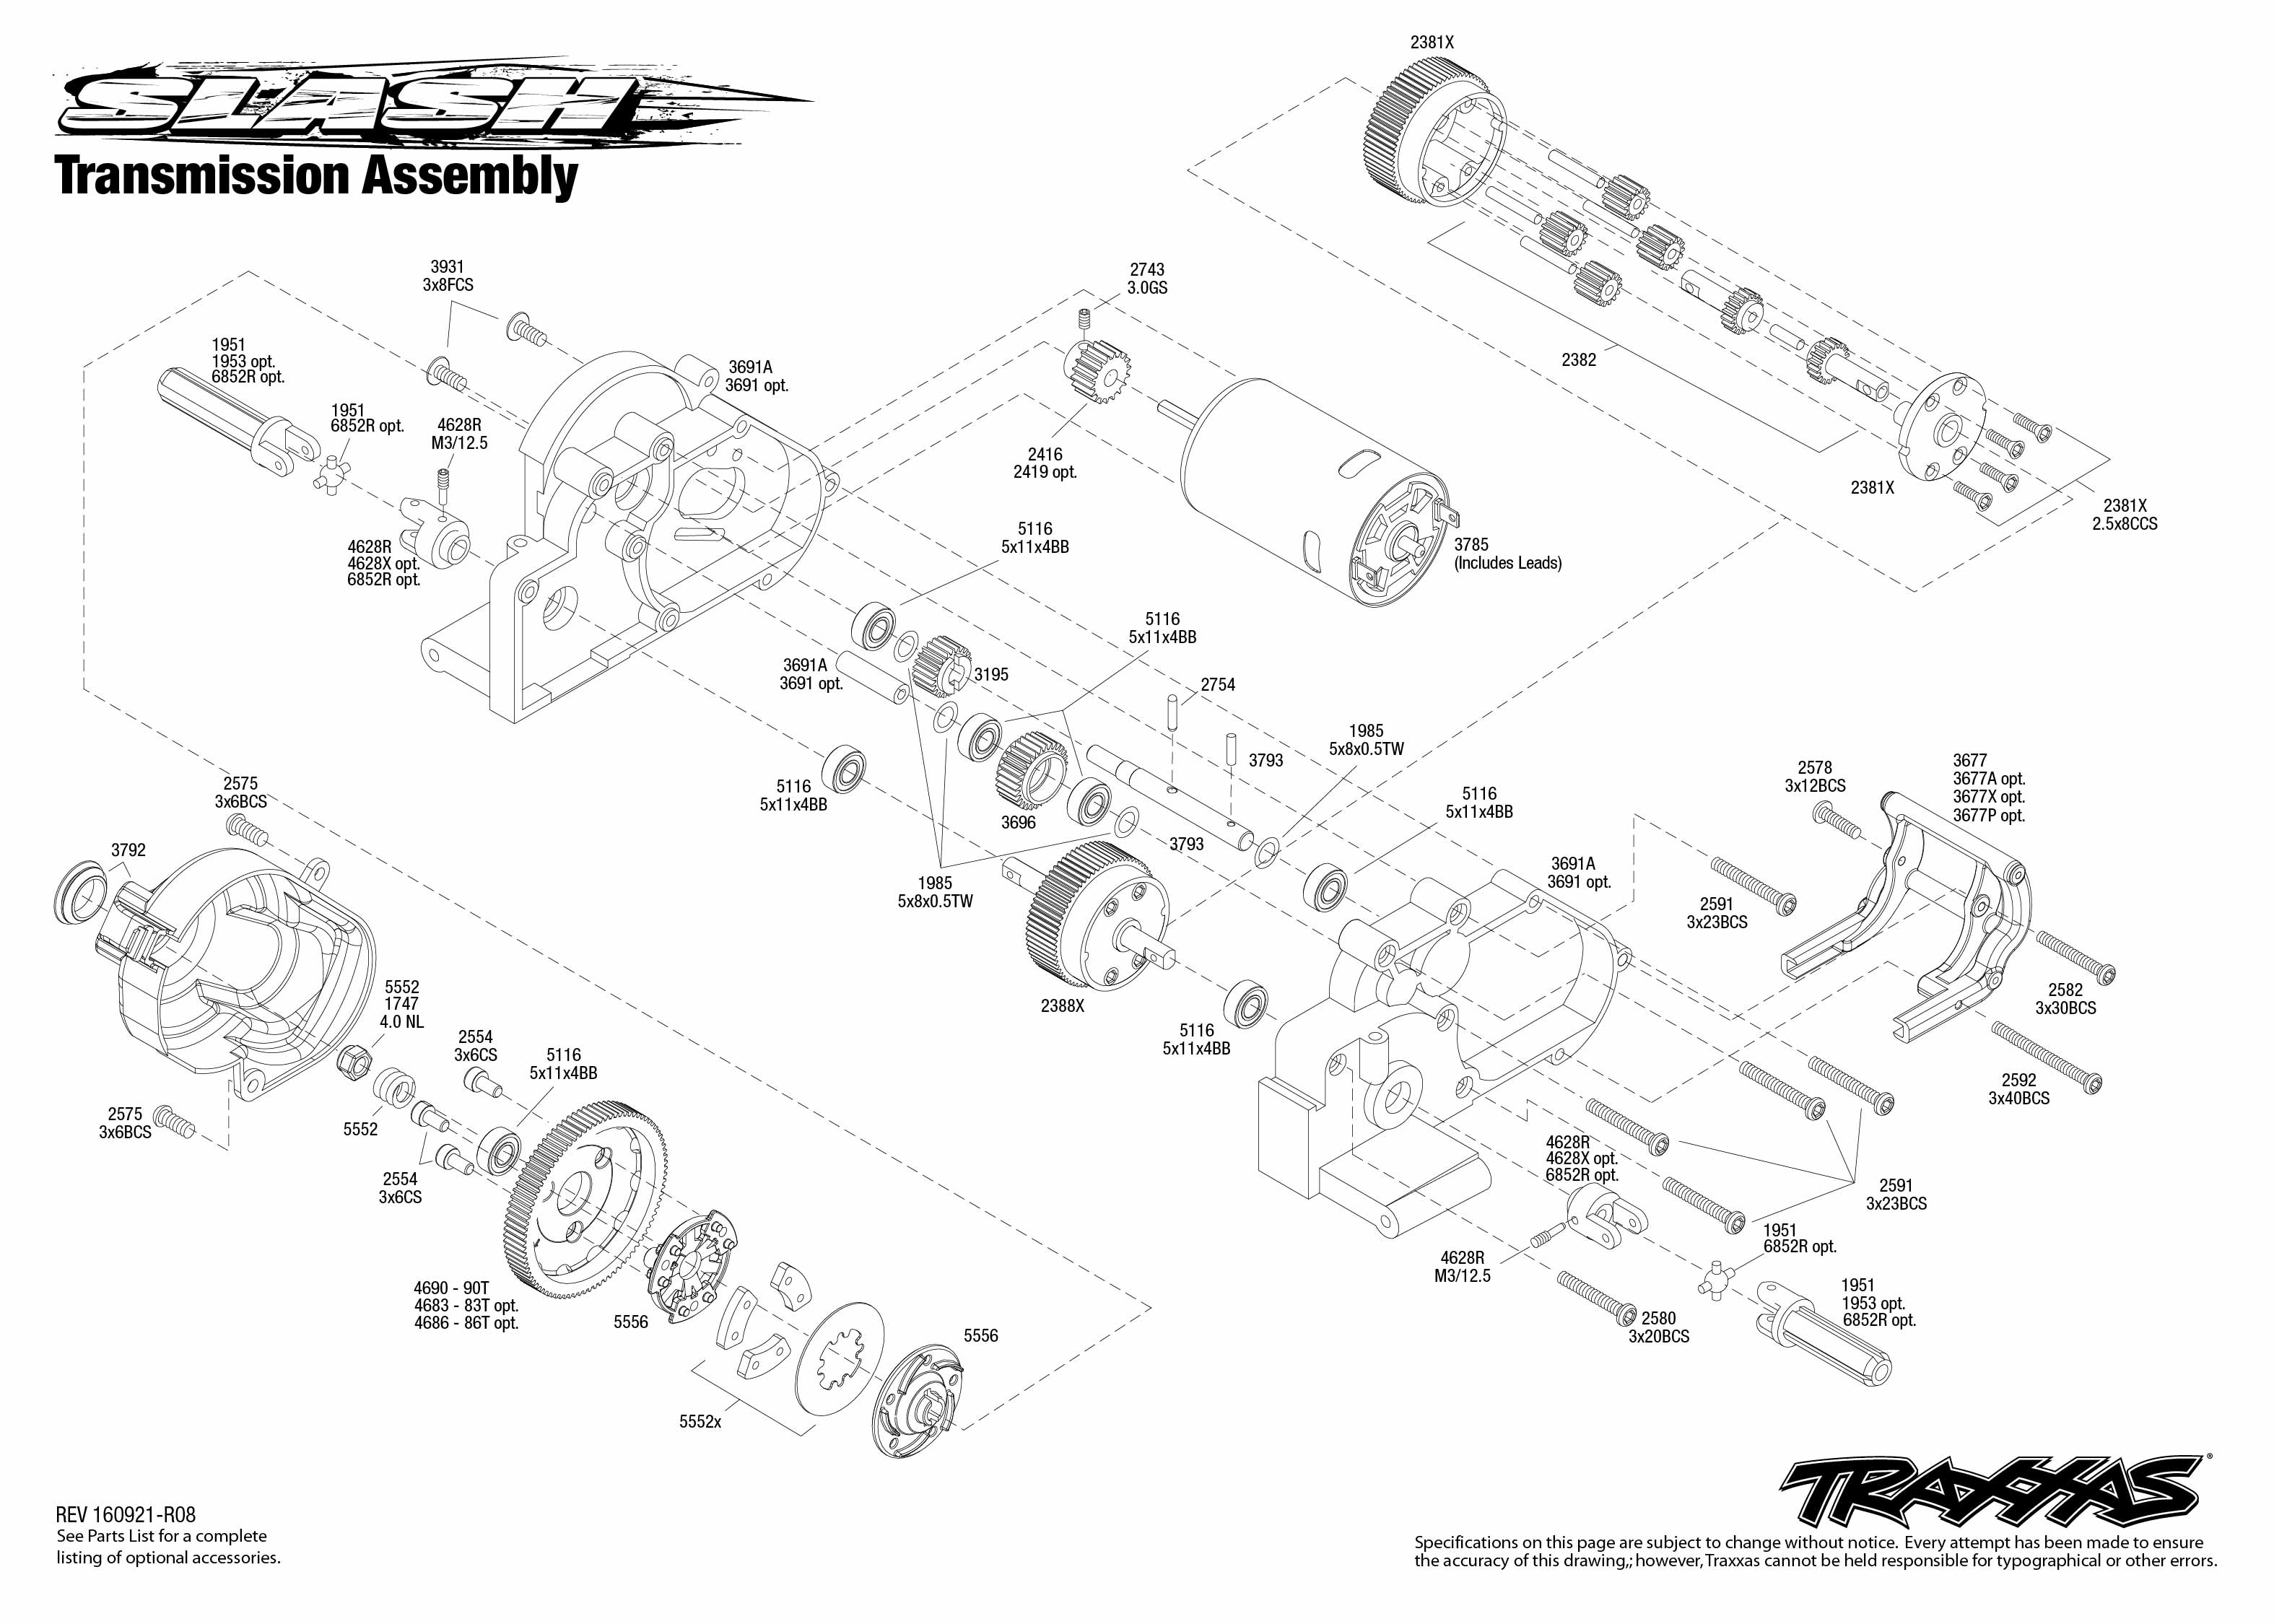 Exploded view: Traxxas Slash 1:10 TQ RTR - Transmission